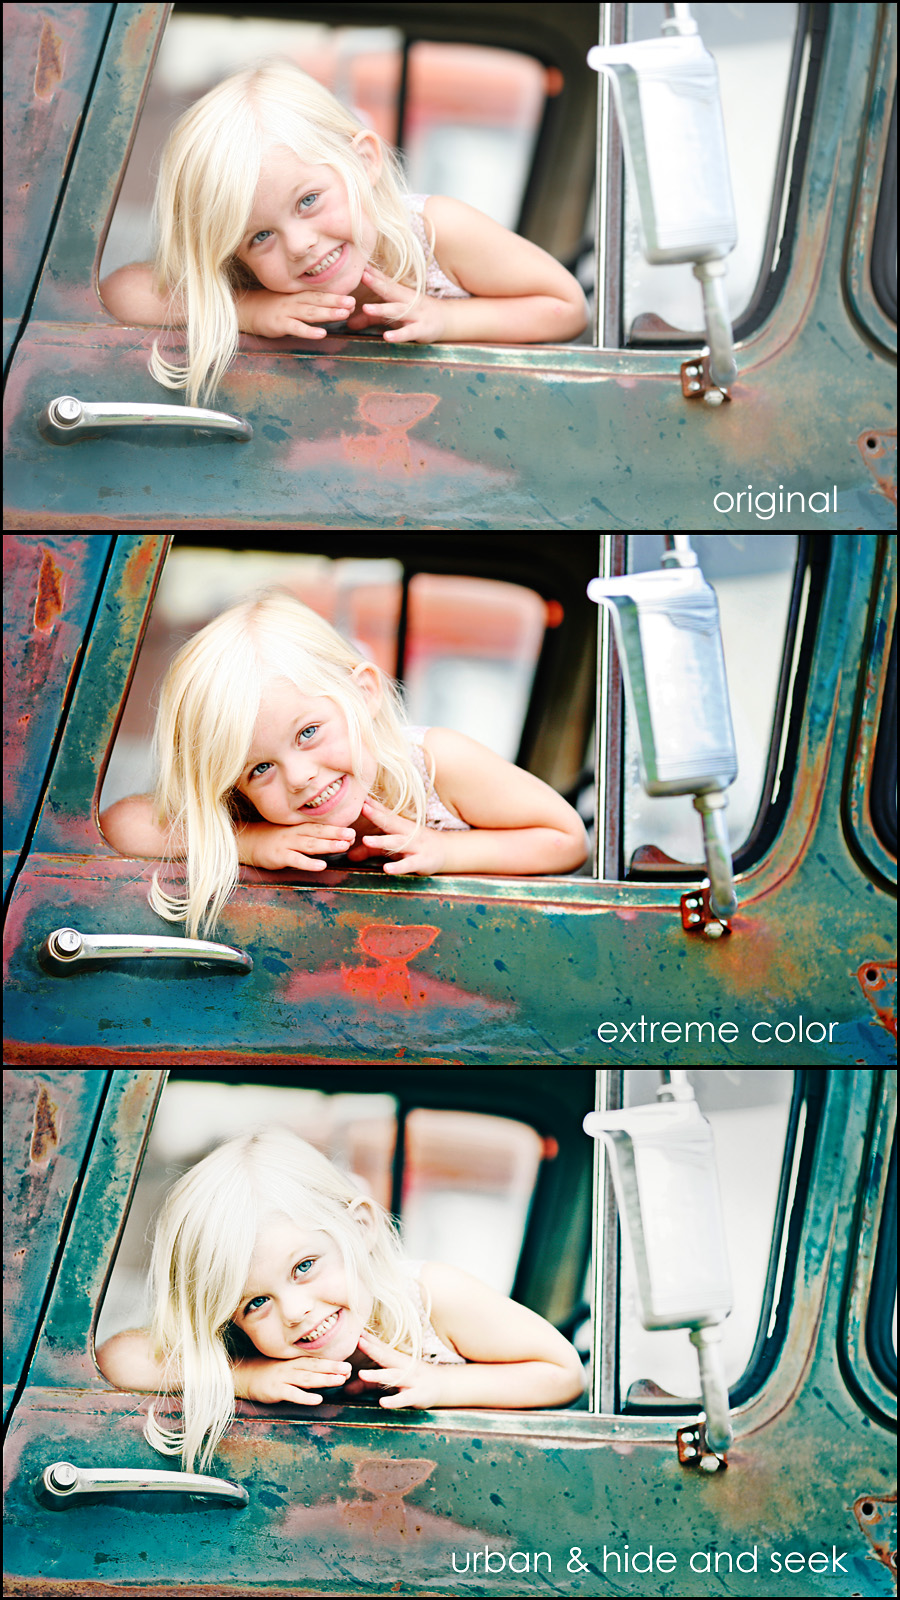 heather-munson MCP All in the Details Photoshop Action Set - NOW AVAILABLE Announcements Photography & Photoshop News Photoshop Actions